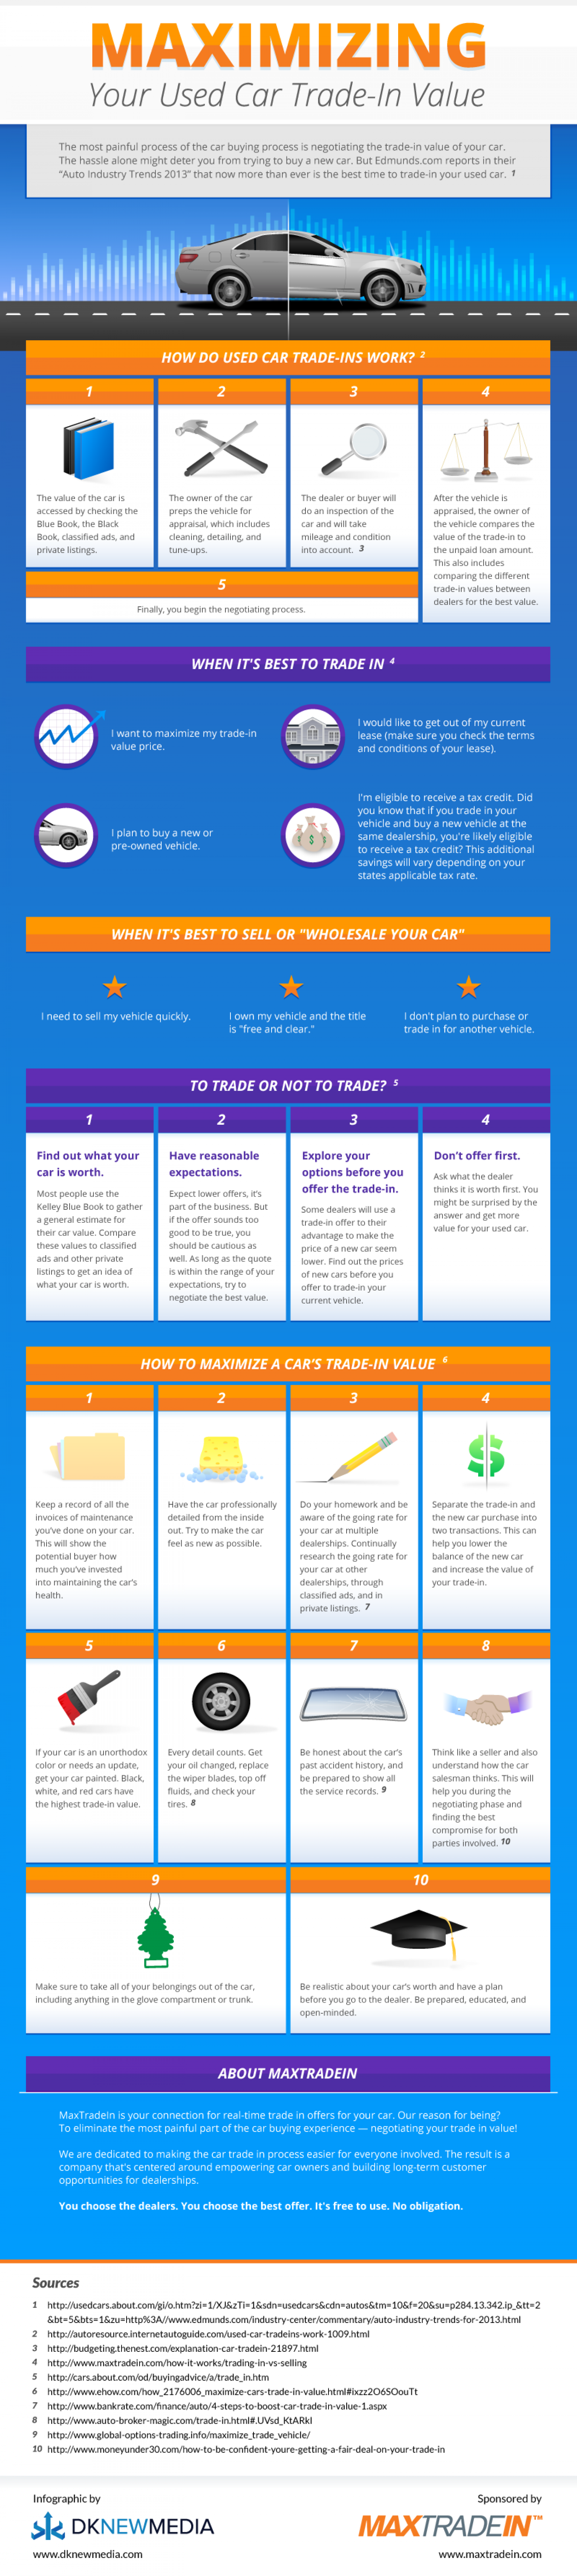 Maximizing Your Used Car Trade-In Value Infographic